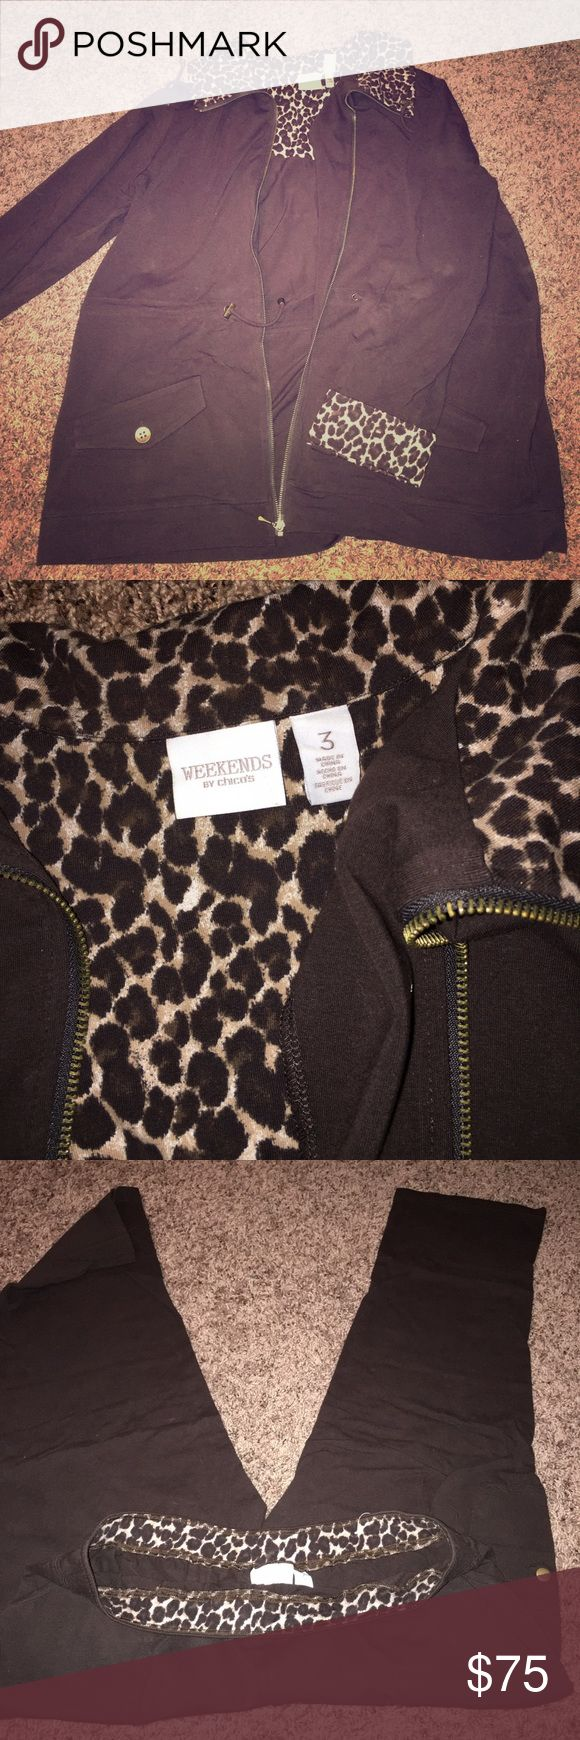 Chico's Weekends Leopard Travel Set- EUC Like New - Chico's Weekender Brown Leopard Travel Set. Excellent Condition. Chico's size 3 Chico's Jackets & Coats